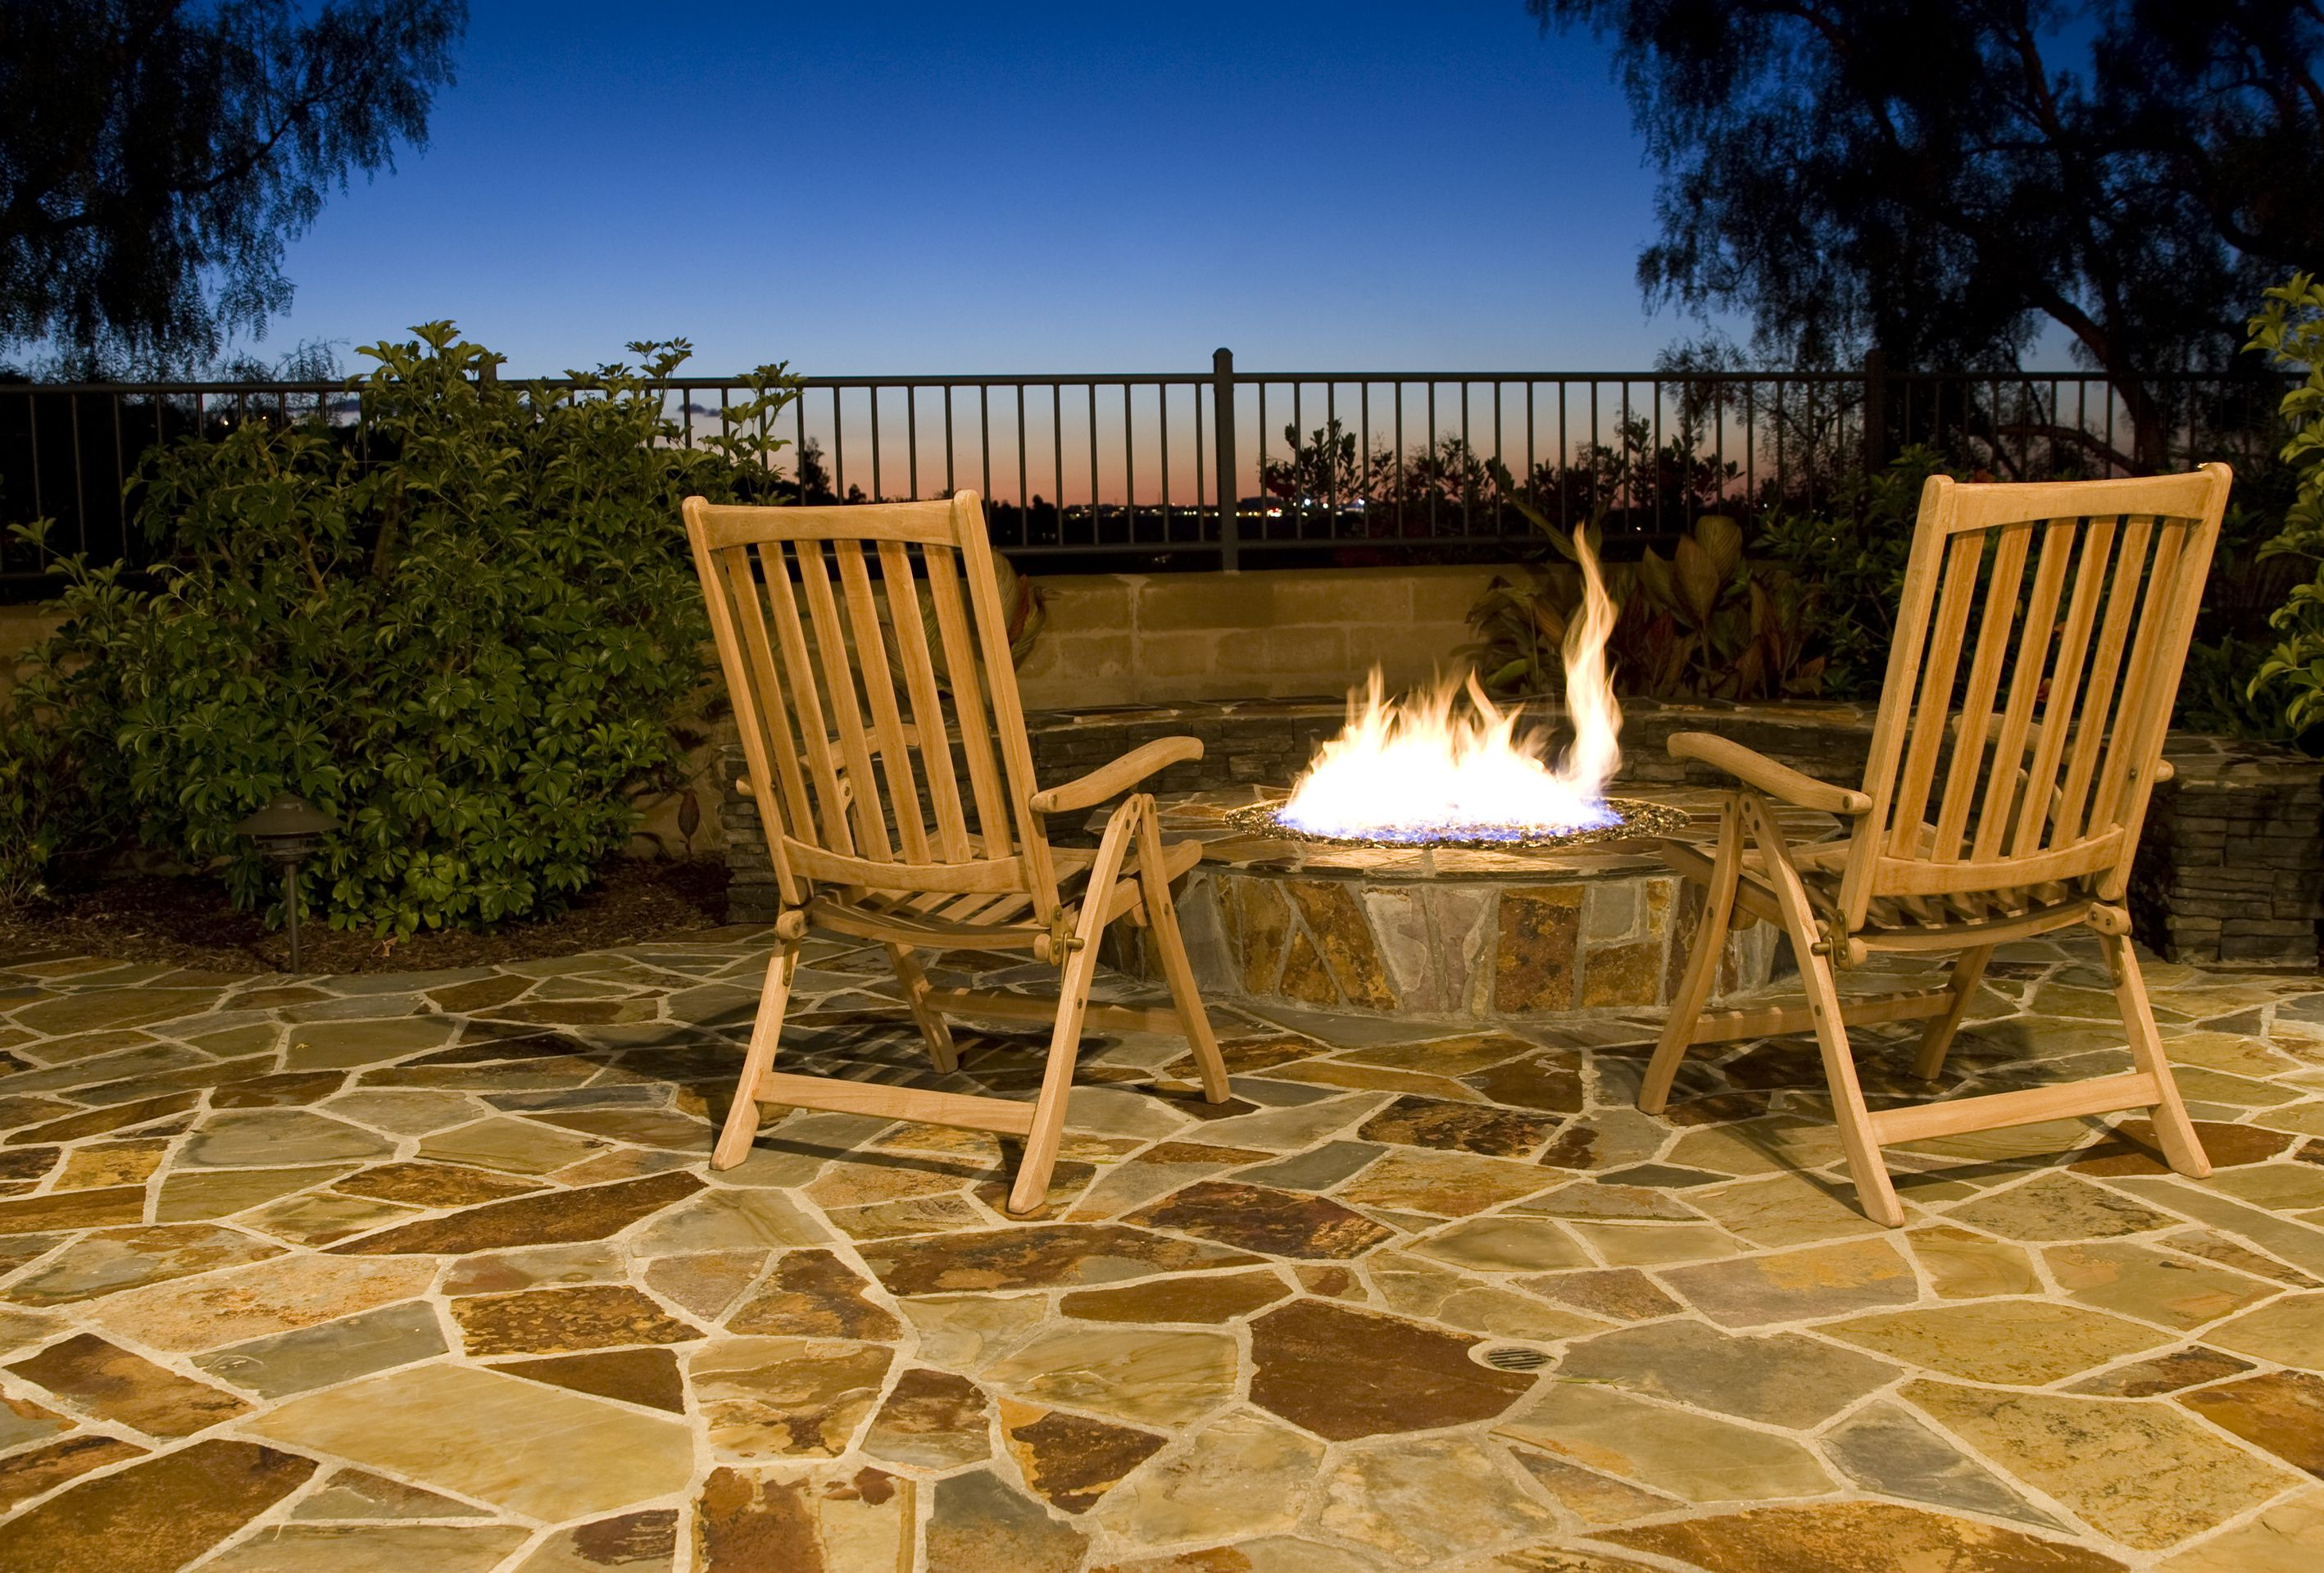 patio paving with stones get natural pictures news ready tips summer back garden uk preparation to for top flower your landscaped yard